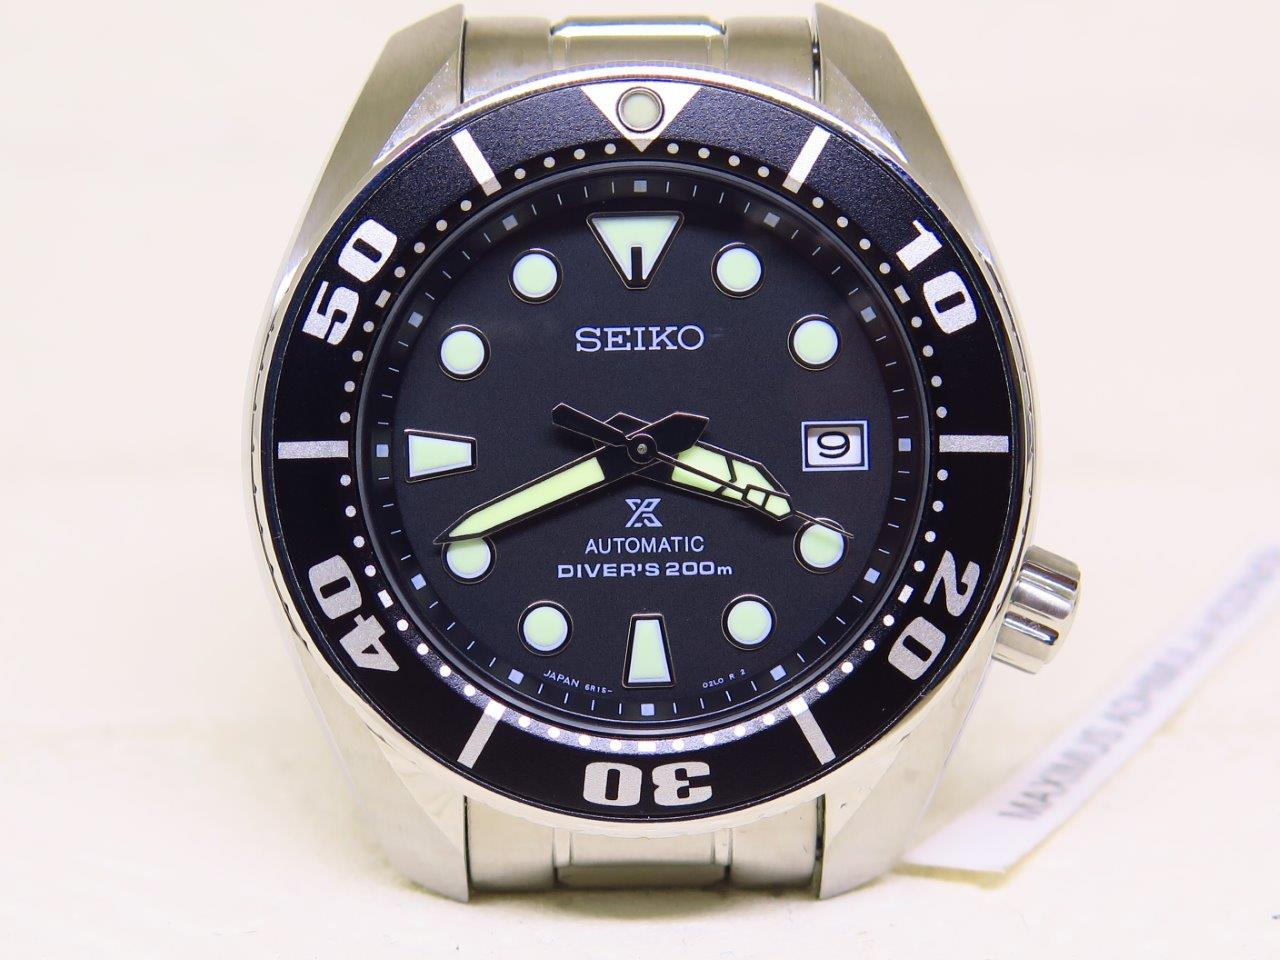 SEIKO DIVER SUMO BLACK DIAL - SEIKO SBDC031 - AUTOMATIC 6R15 - MINT CONDITION